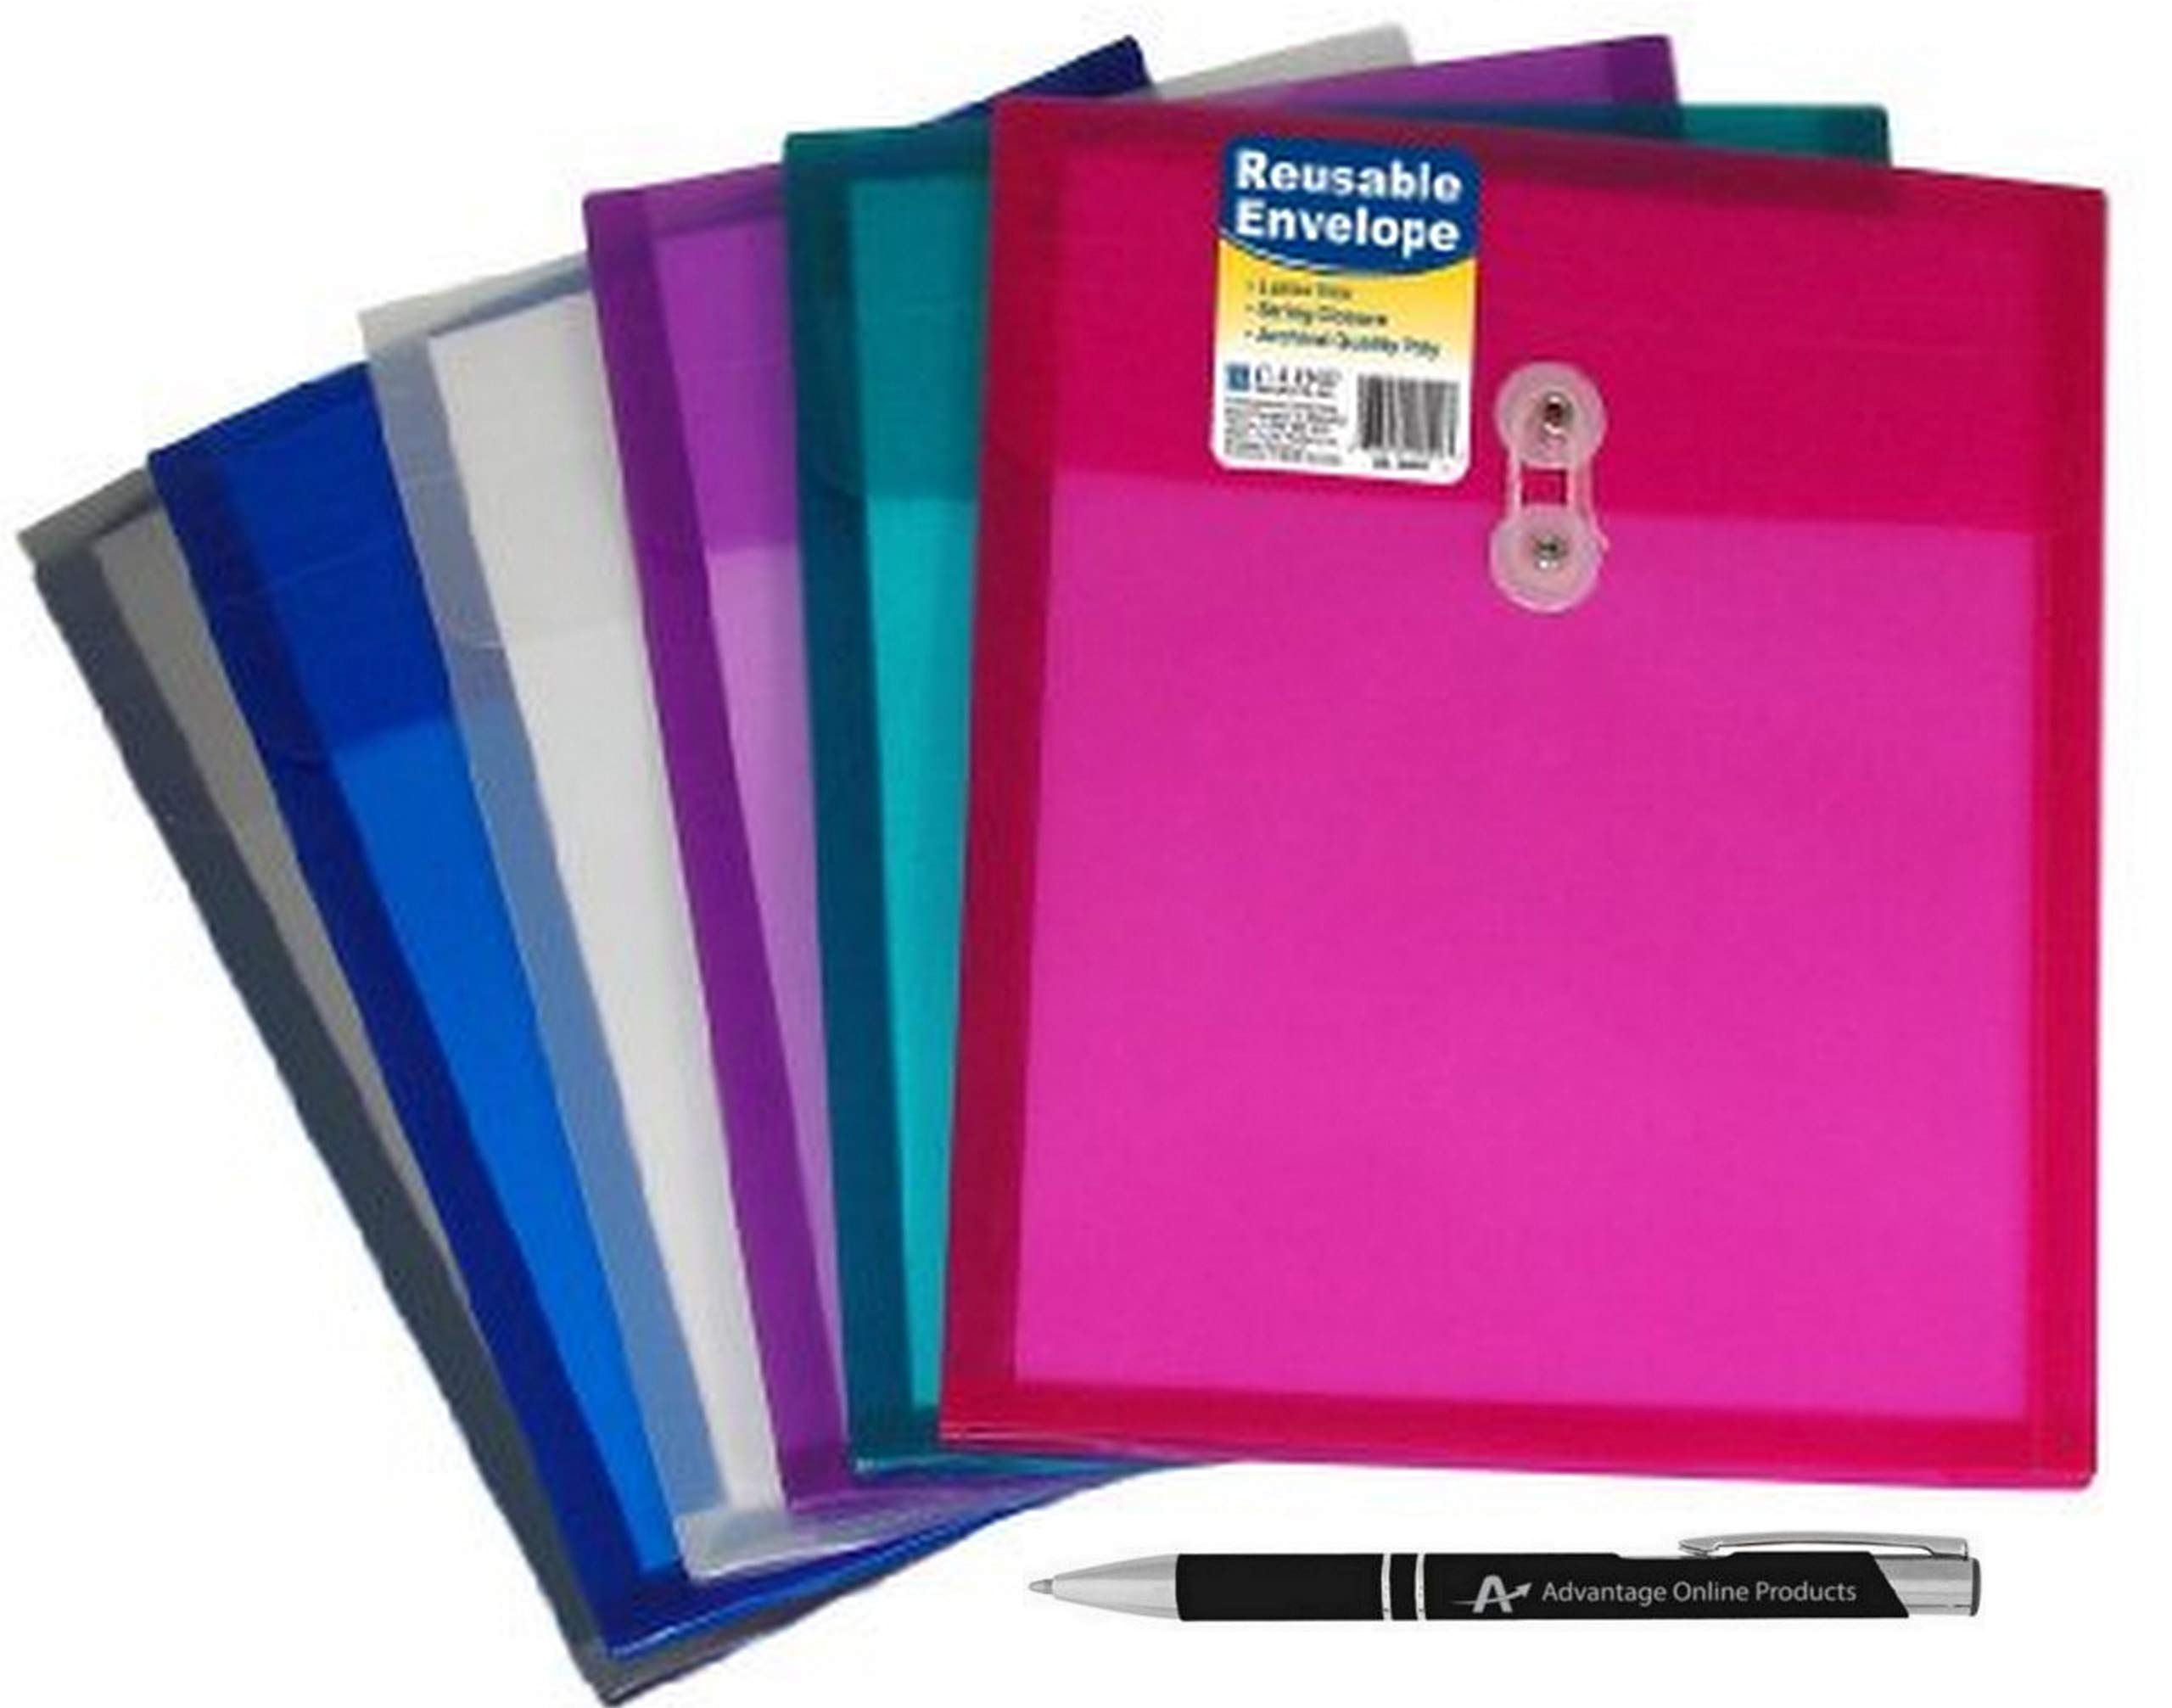 6-Pack C-Line Reusable Poly Envelope with String Closure, 1-In. Gusset, Top Load, Letter Size, Pack of 6 Envelopes, Assorted Colors (58020)